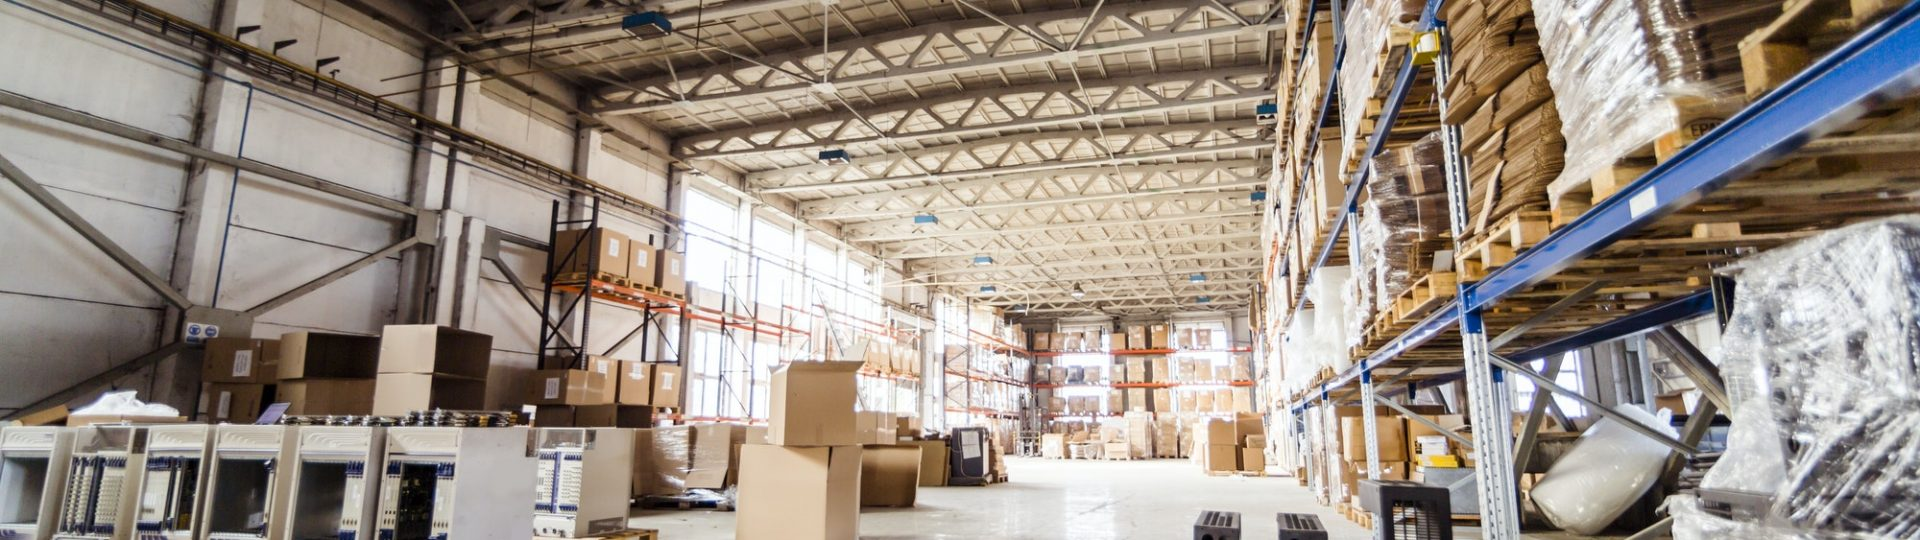 Warehouse and pallets